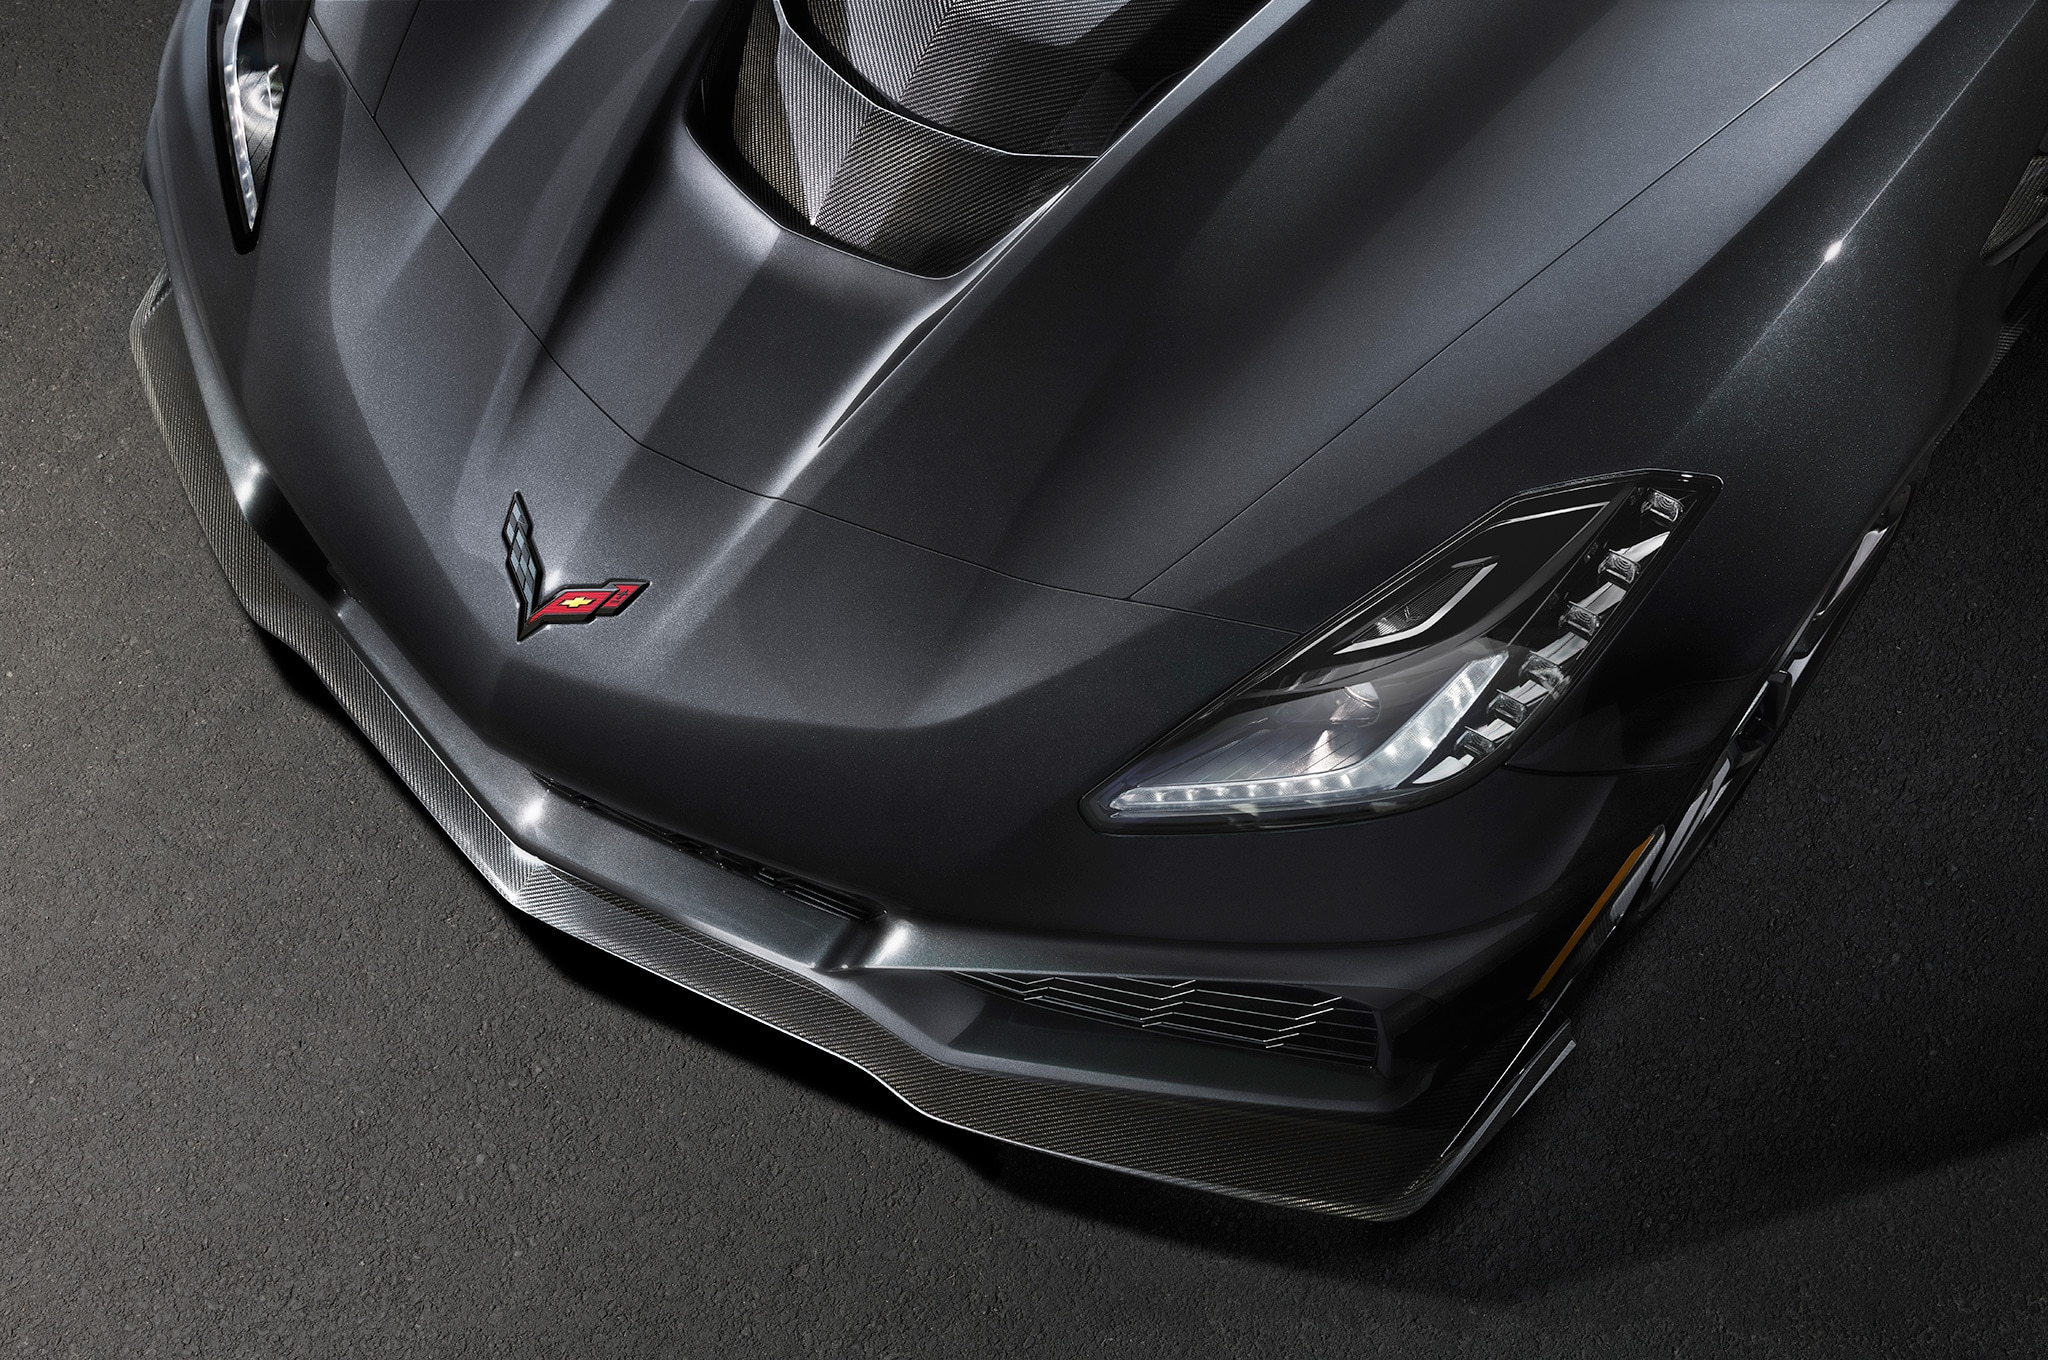 Chevy Corvette ZR1 debuts with an incredible 755bhp